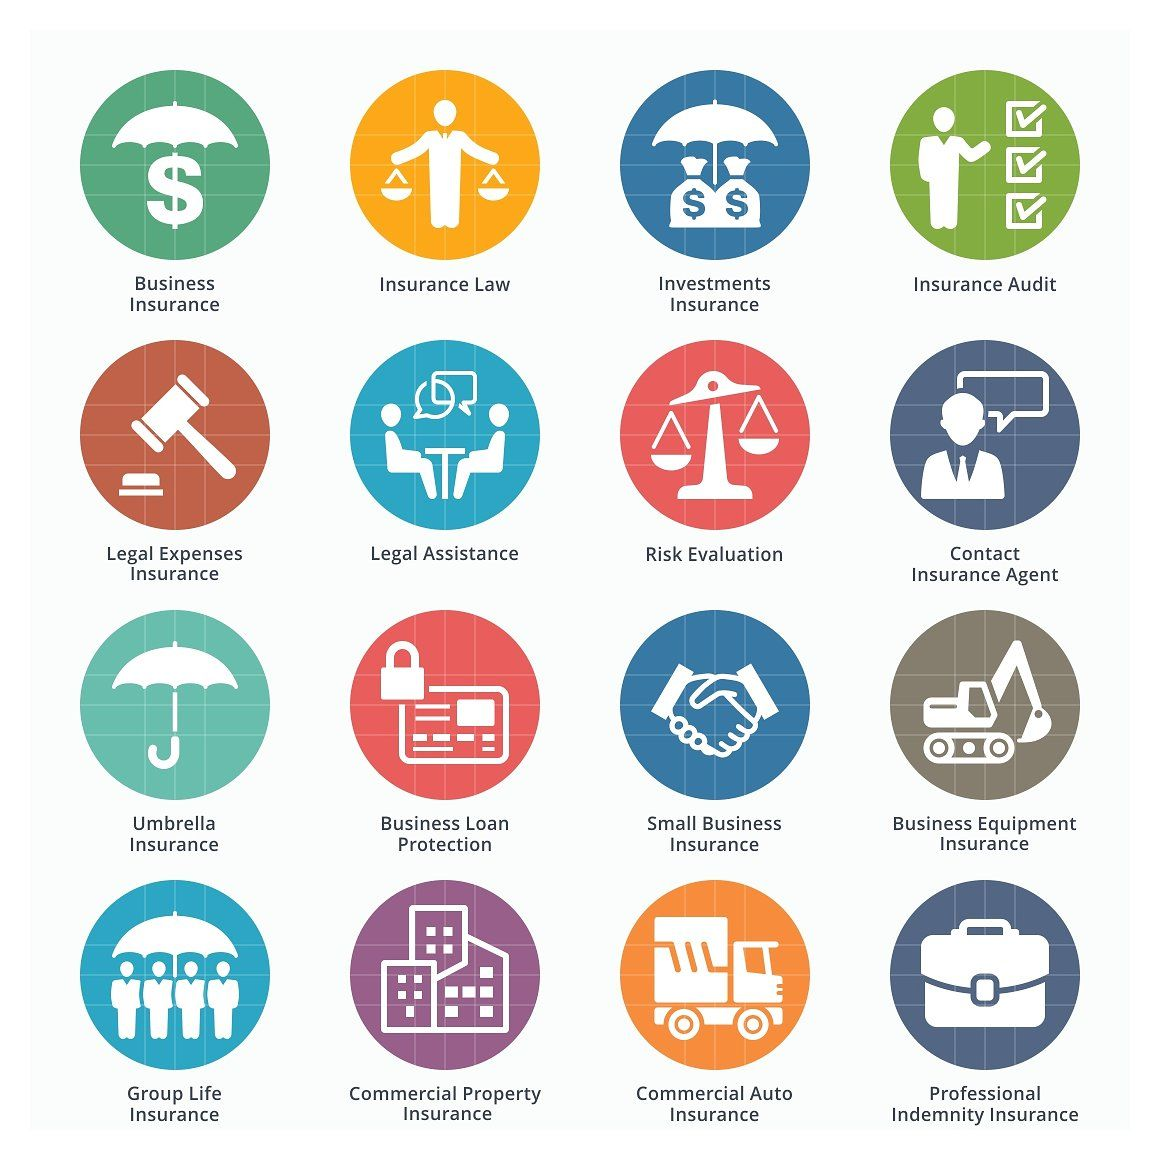 Business Insurance Icons Colored Business Insurance Professional Insurance Insurance Law